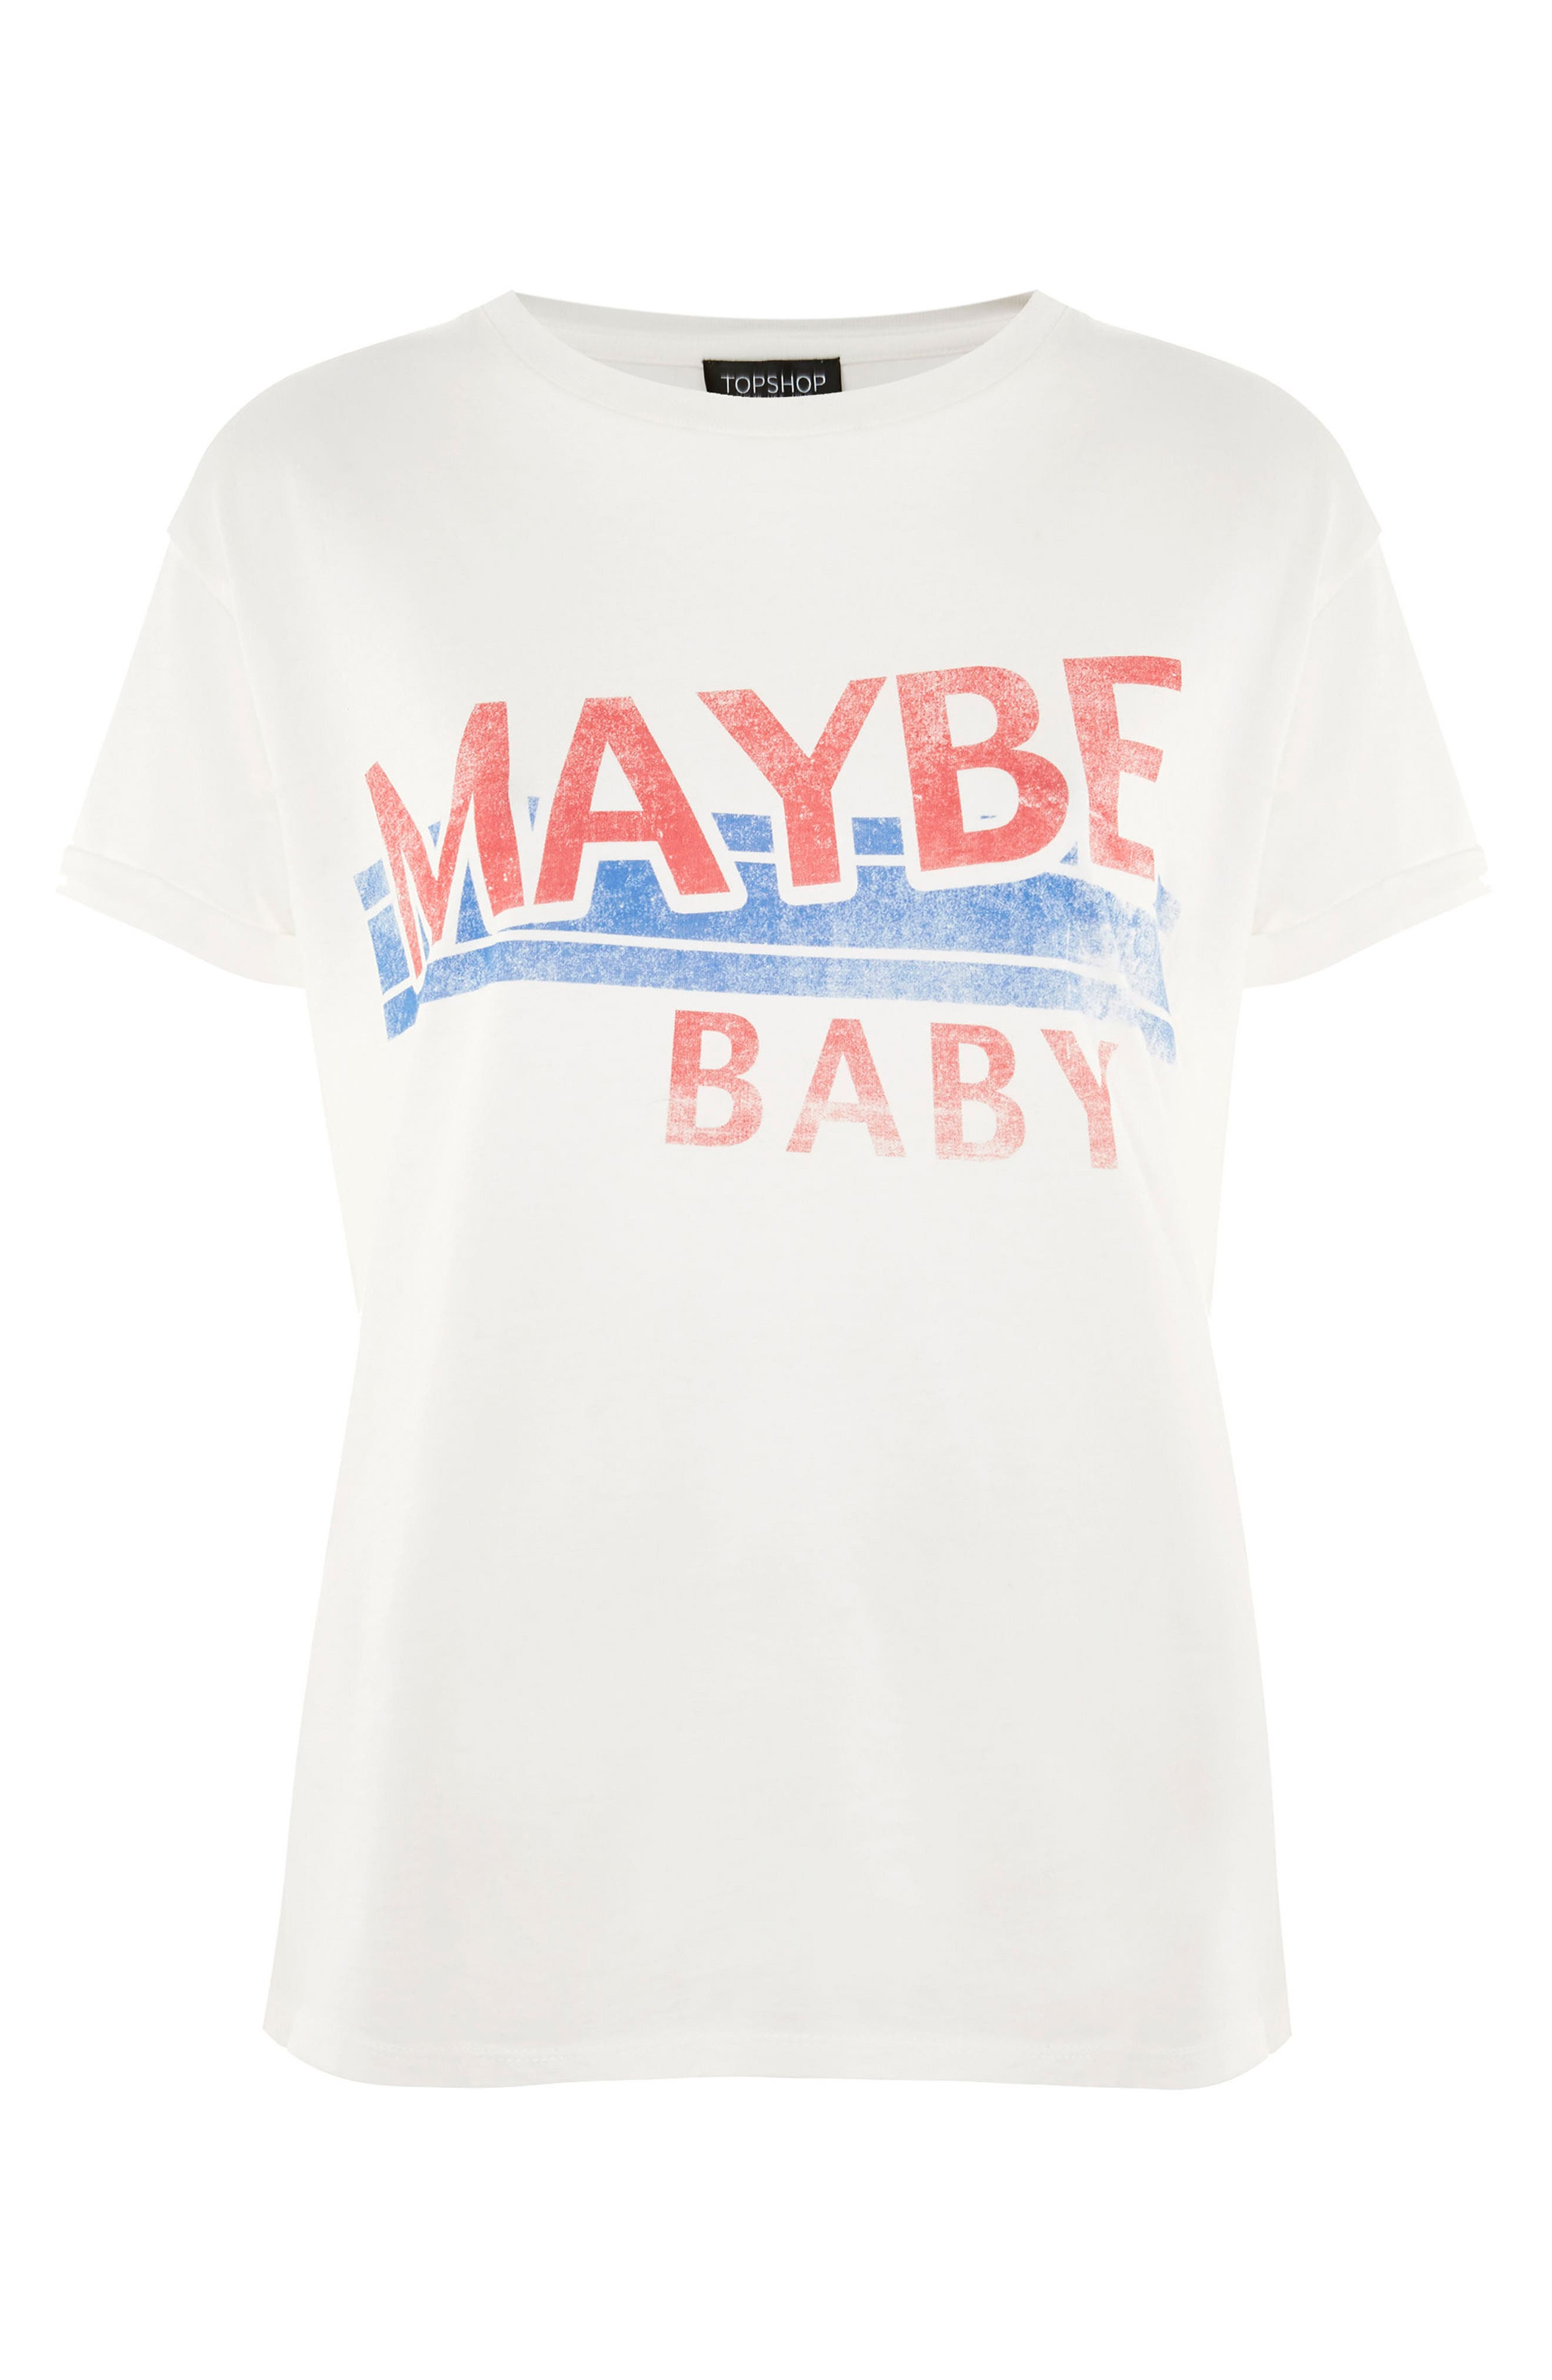 Maybe Baby Cotton Tee,                             Alternate thumbnail 4, color,                             White Multi